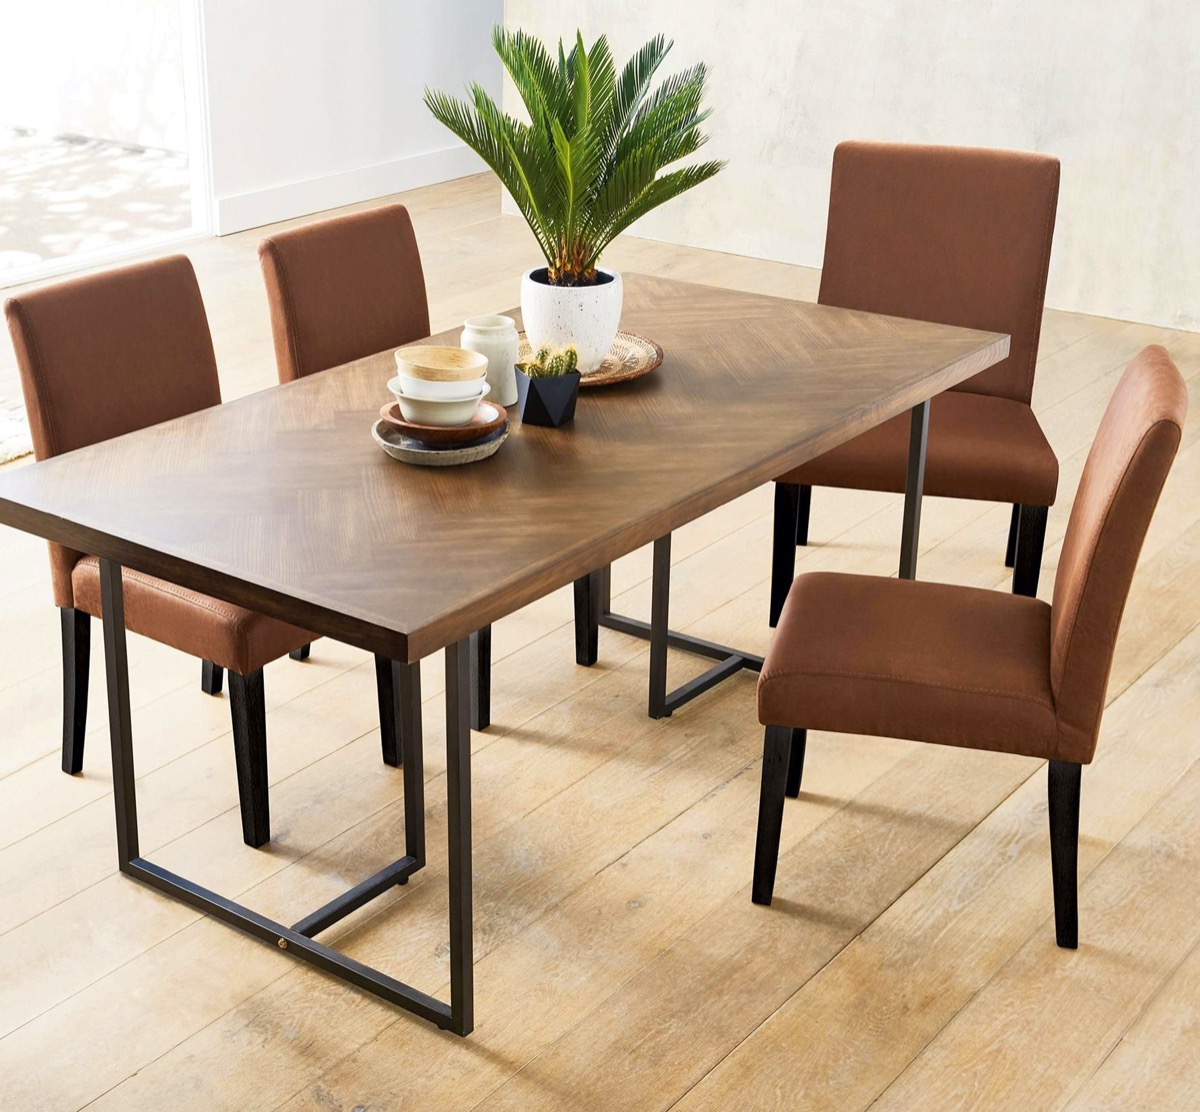 Brown wood dining room table